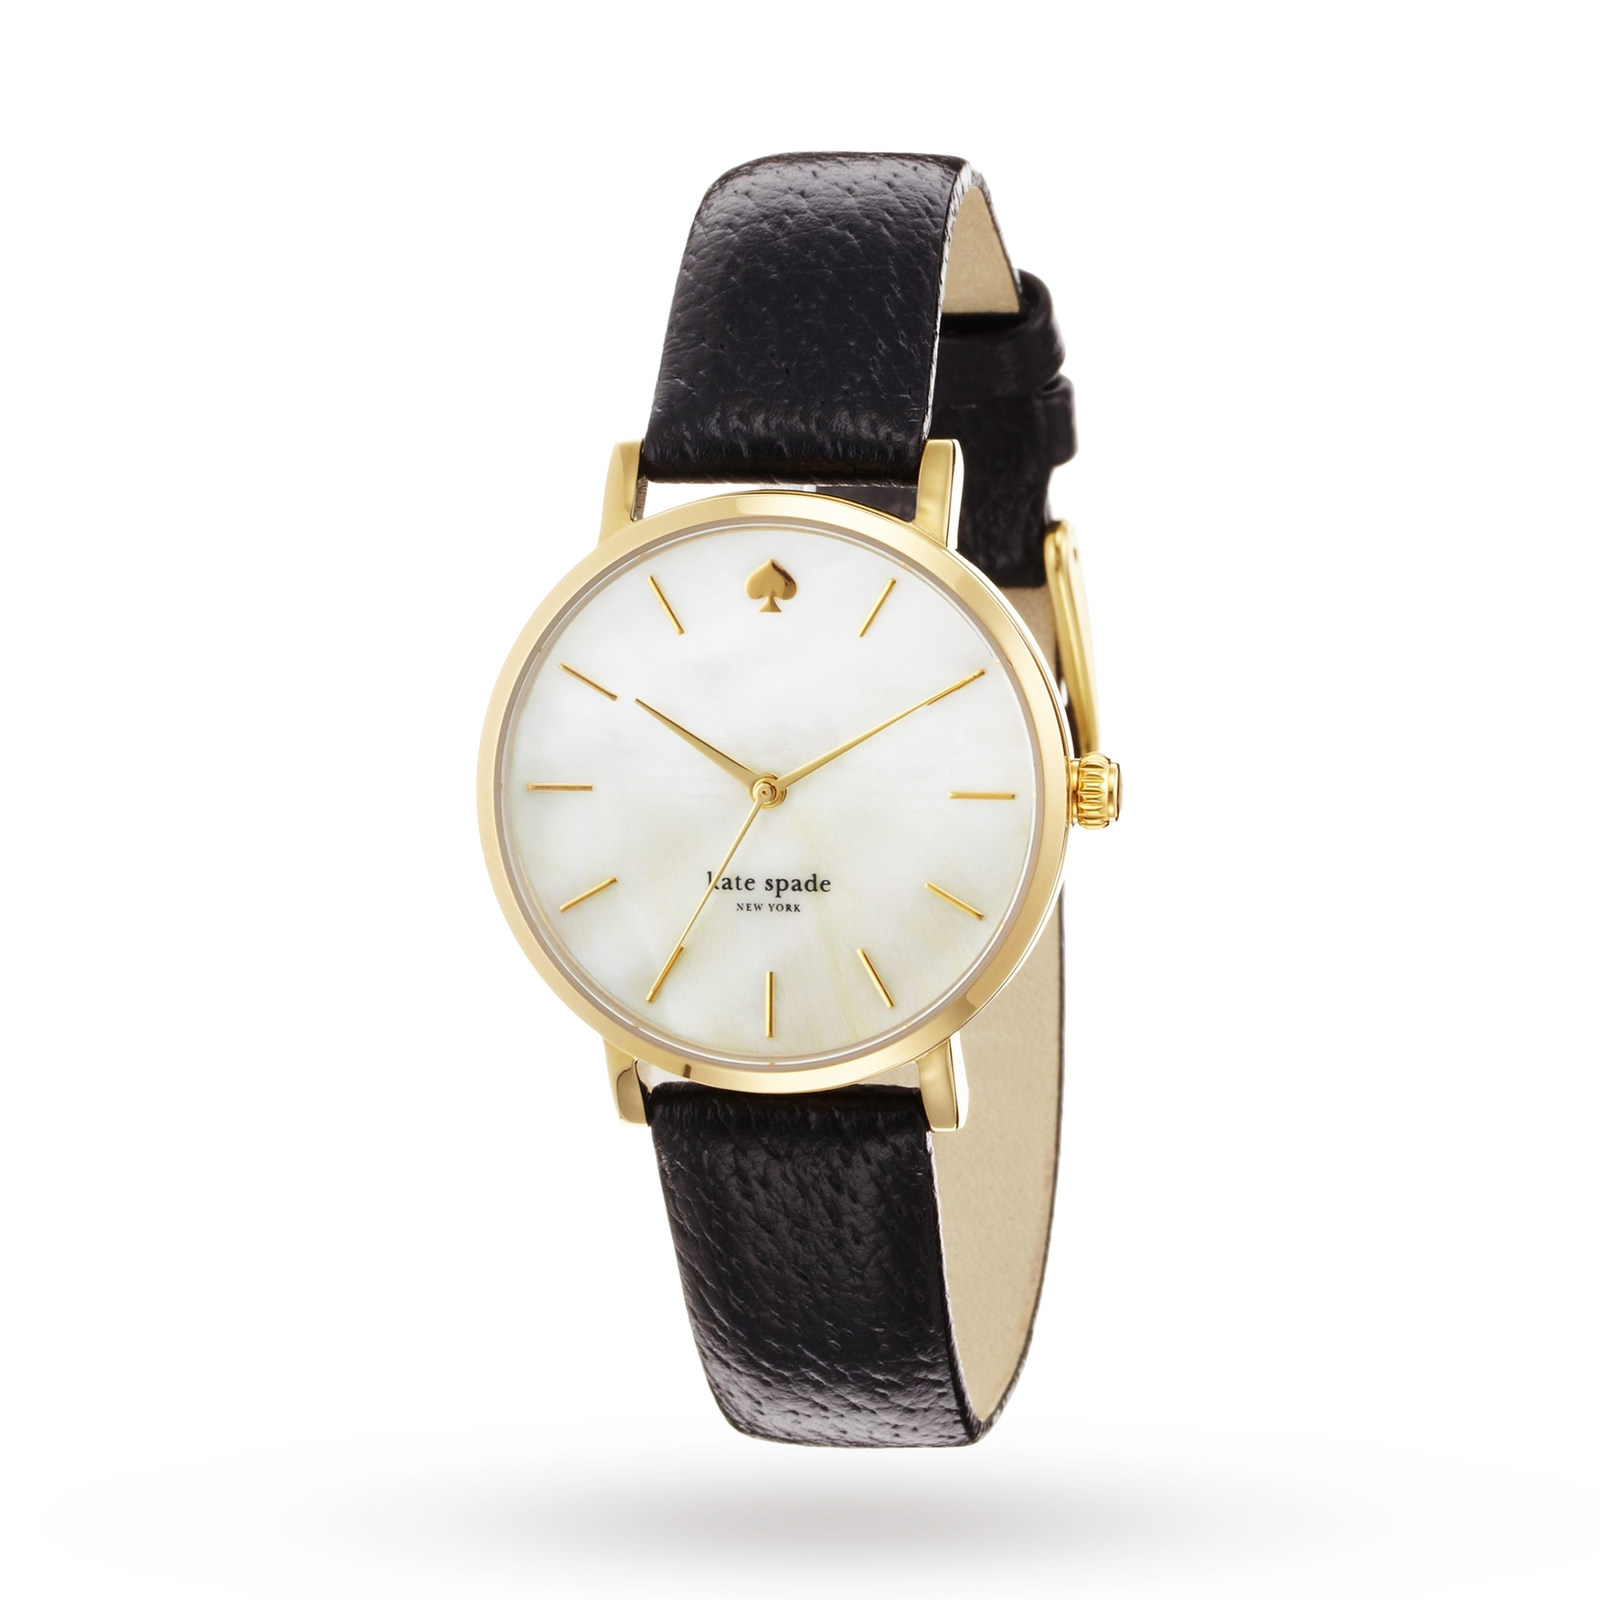 Kate Spade New York Ladies' Metro Watch